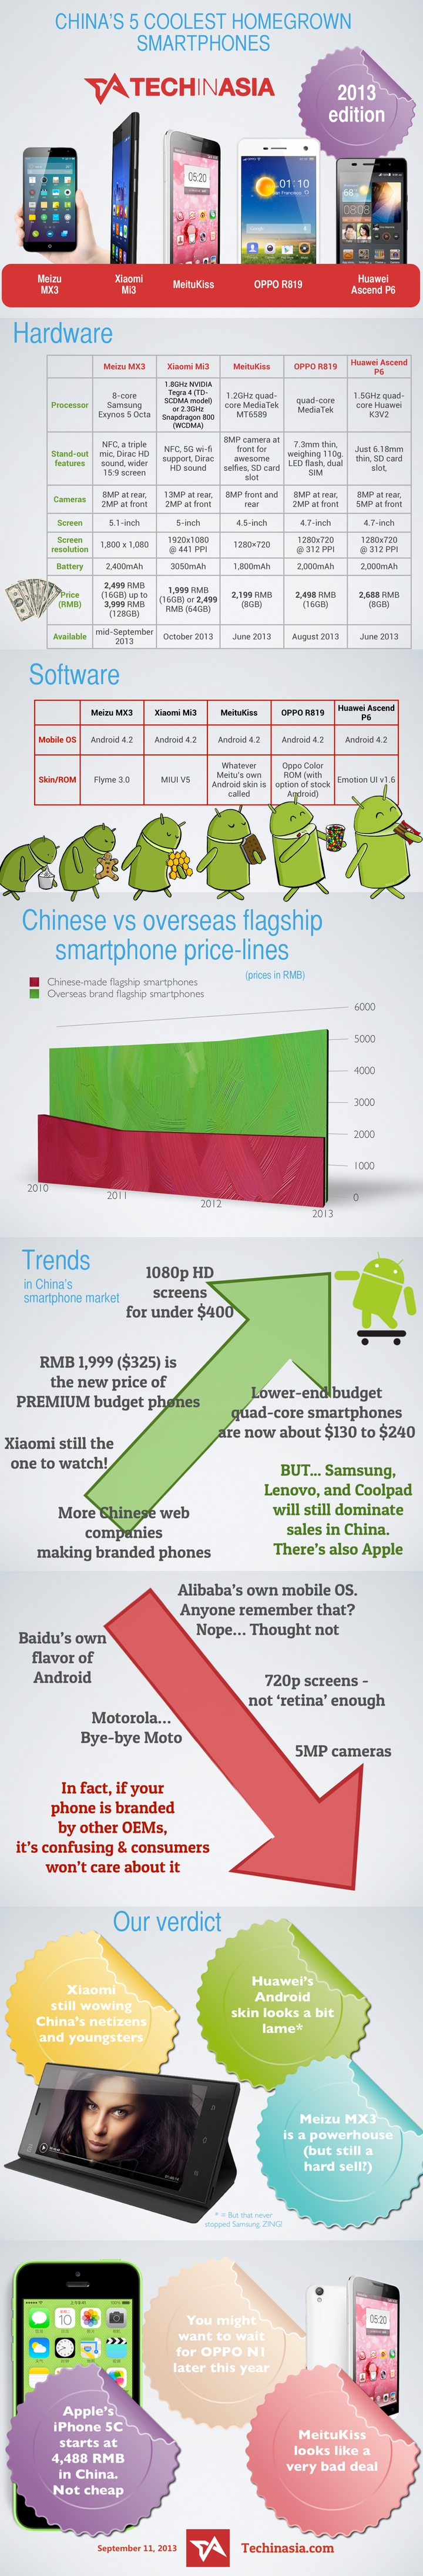 China's coolest homegrown smartphones, 2013 infographic